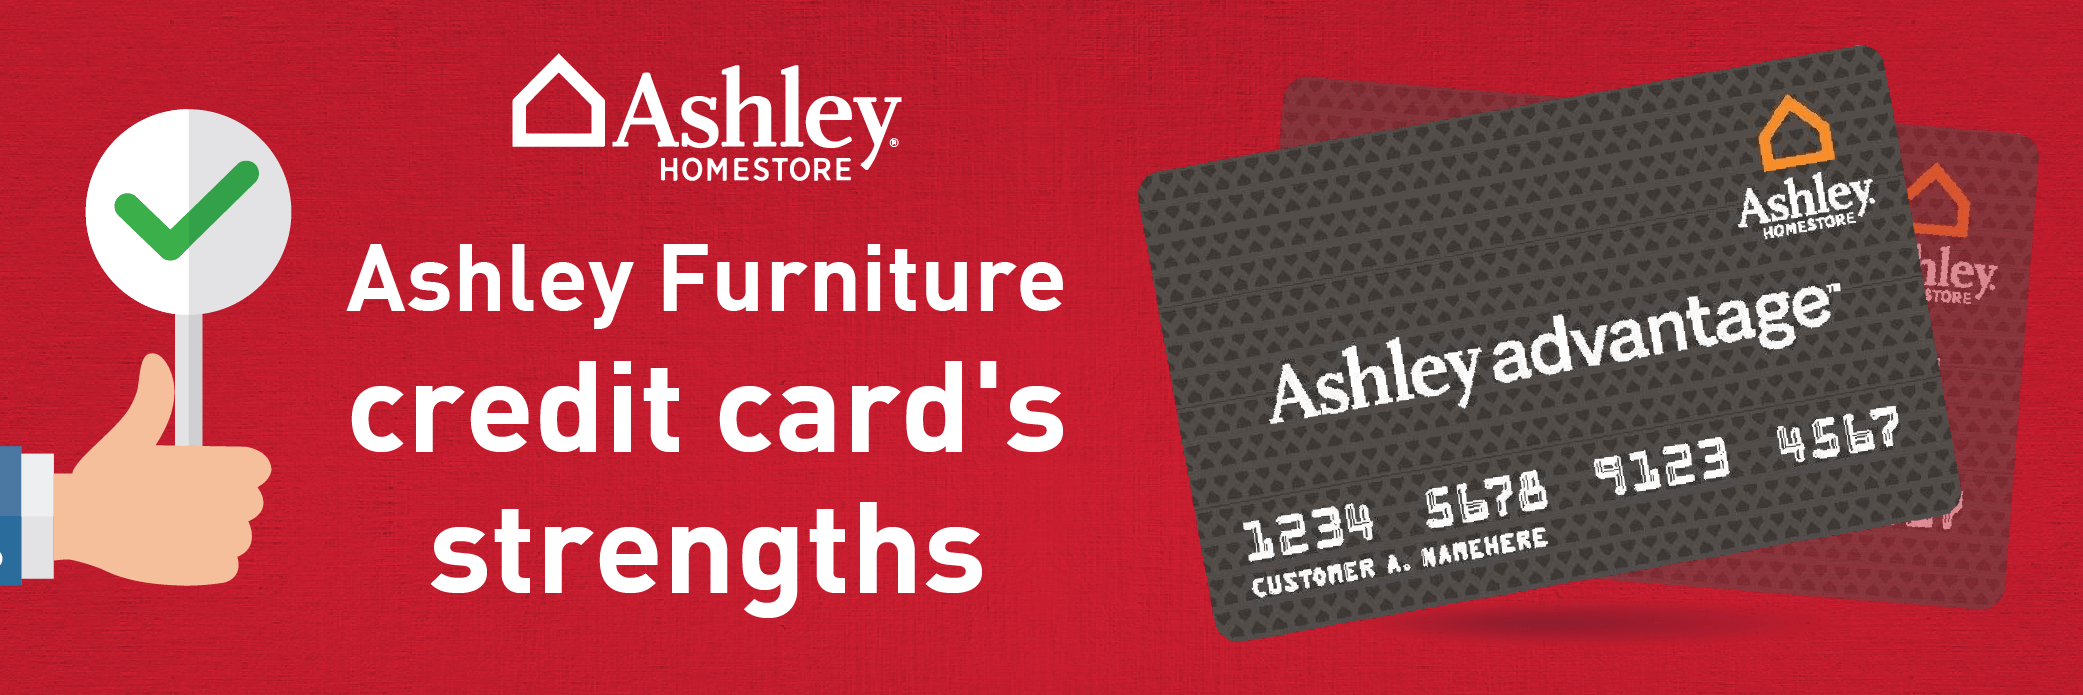 ashley home furniture credit card review